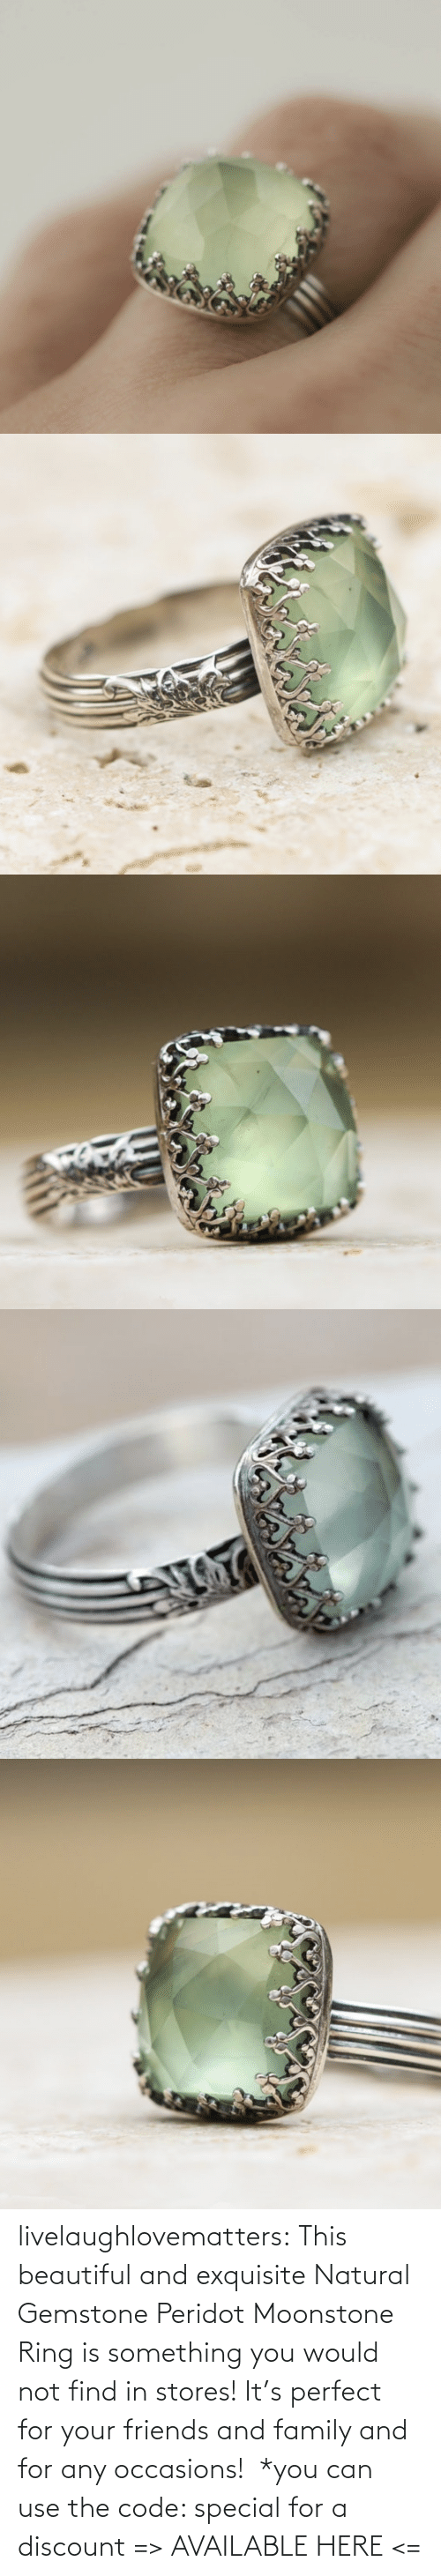 the code: livelaughlovematters: This beautiful and exquisite Natural Gemstone Peridot Moonstone Ring is something you would not find in stores! It's perfect for your friends and family and for any occasions!  *you can use the code: special for a discount => AVAILABLE HERE <=